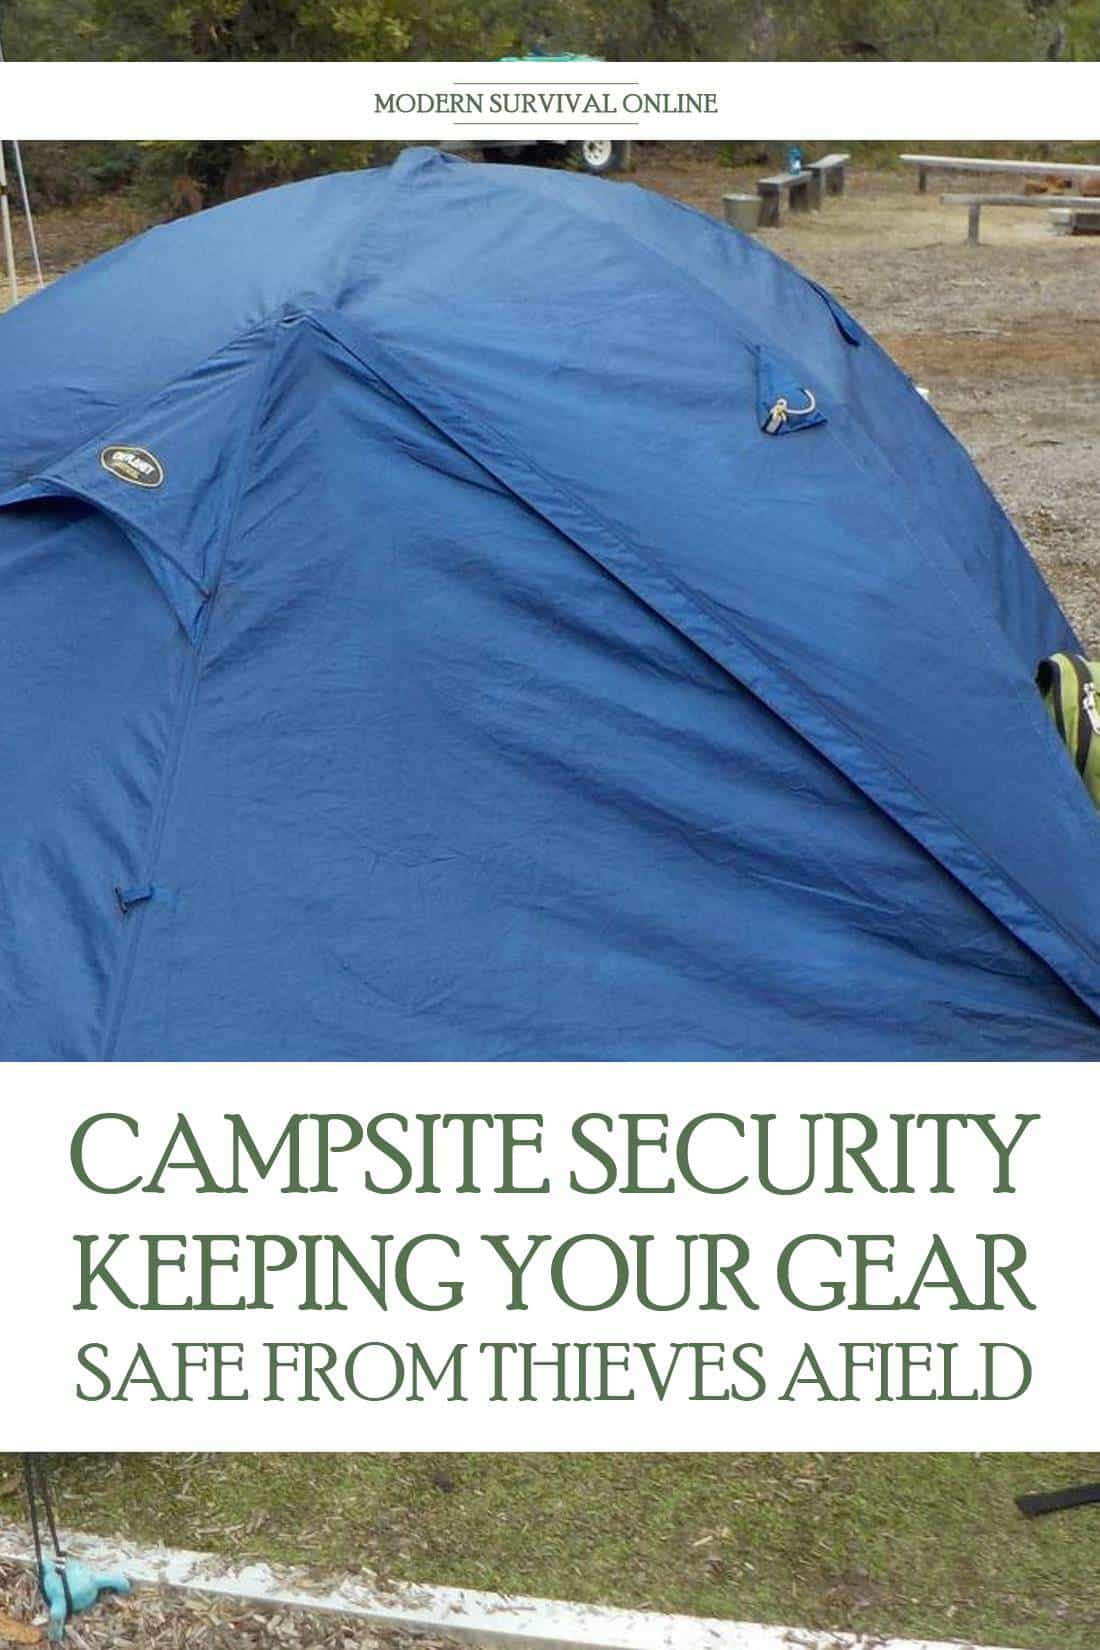 camping security Pinterest image